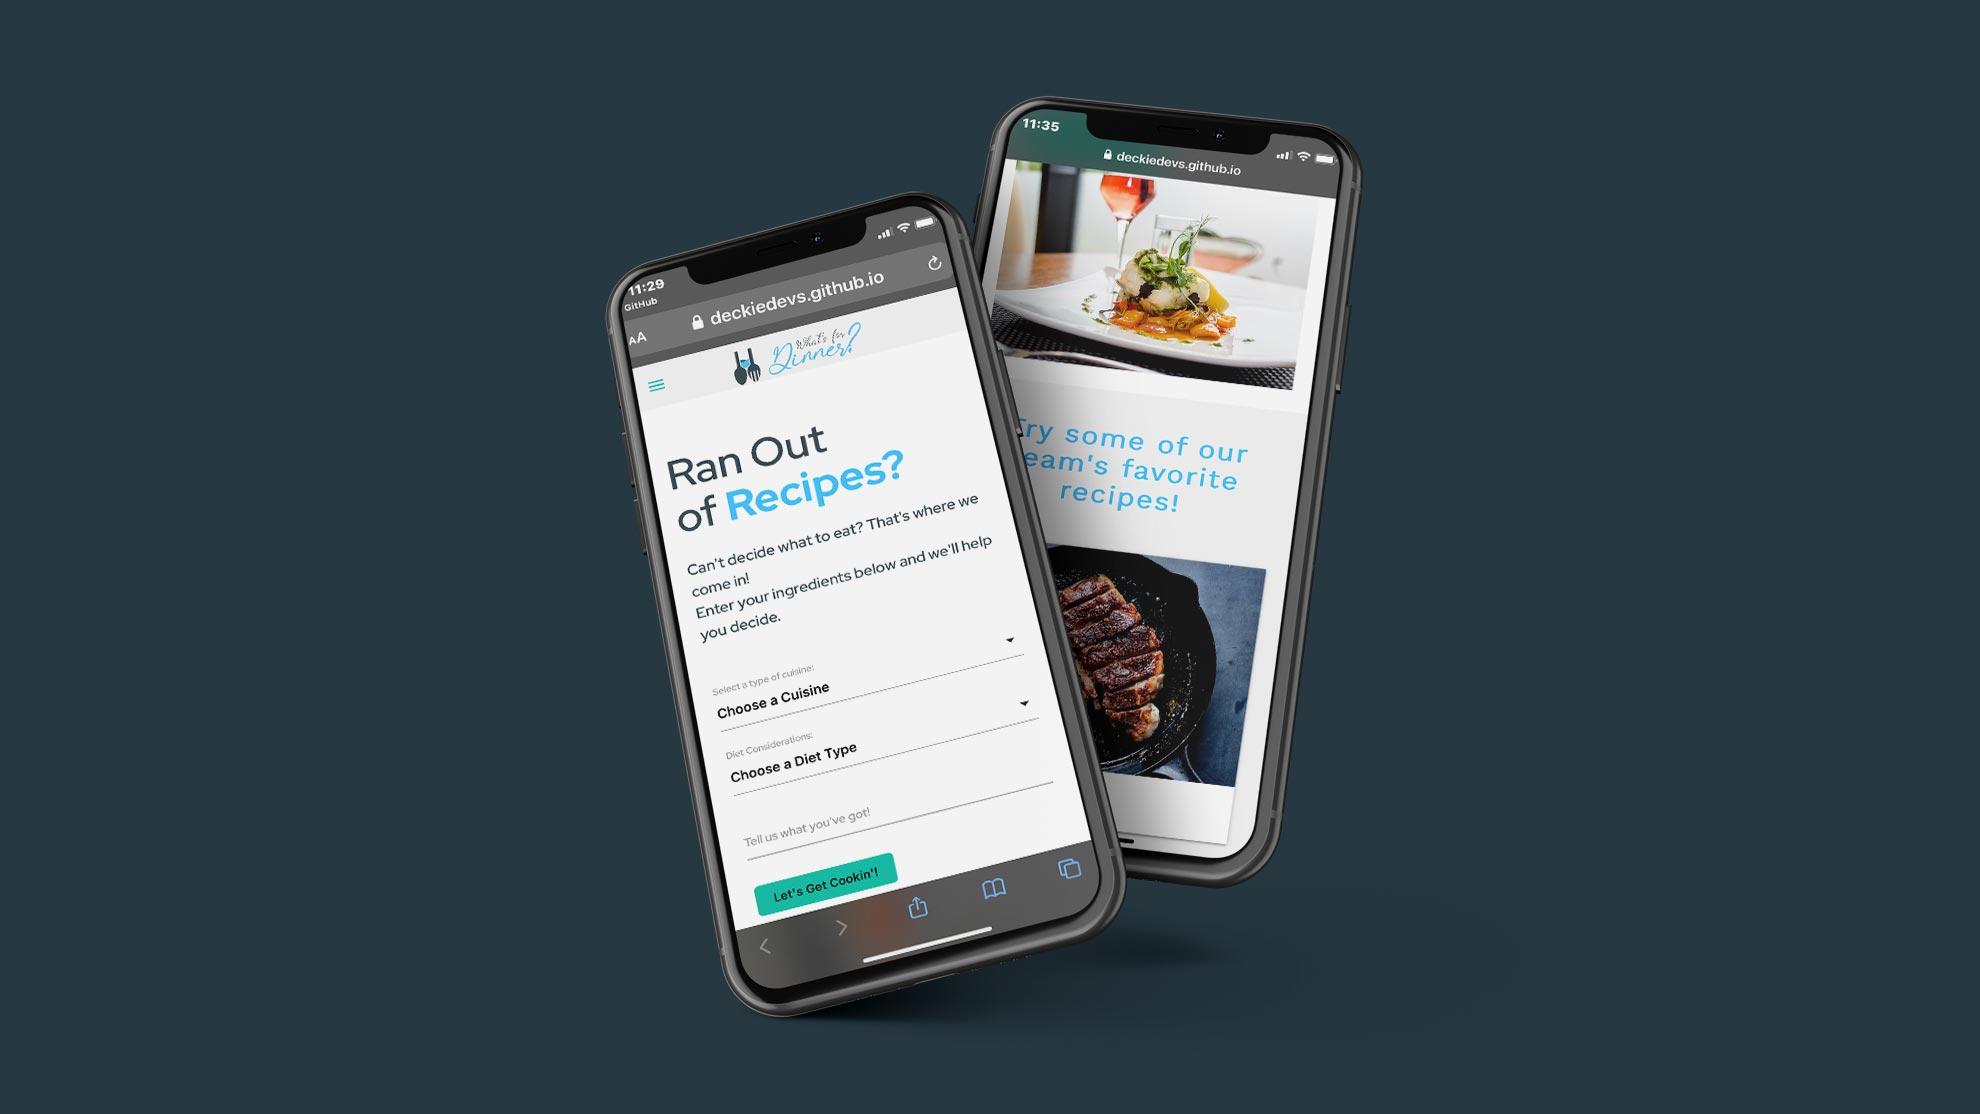 whats-for-dinner-iPhones-mockup